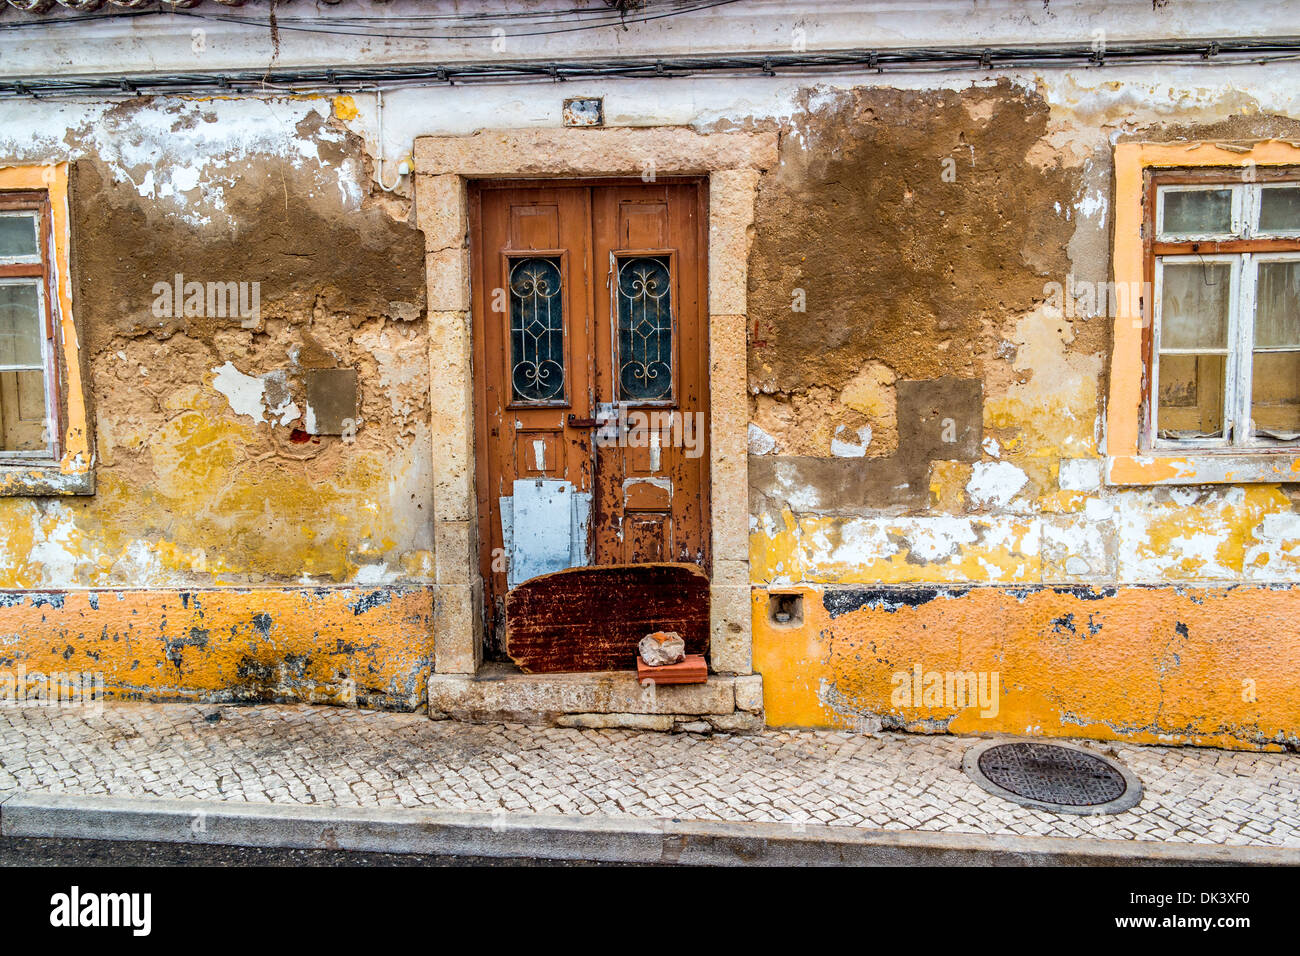 Old building in a state of dilapidation with paint and cement peeling off the walls - Stock Image